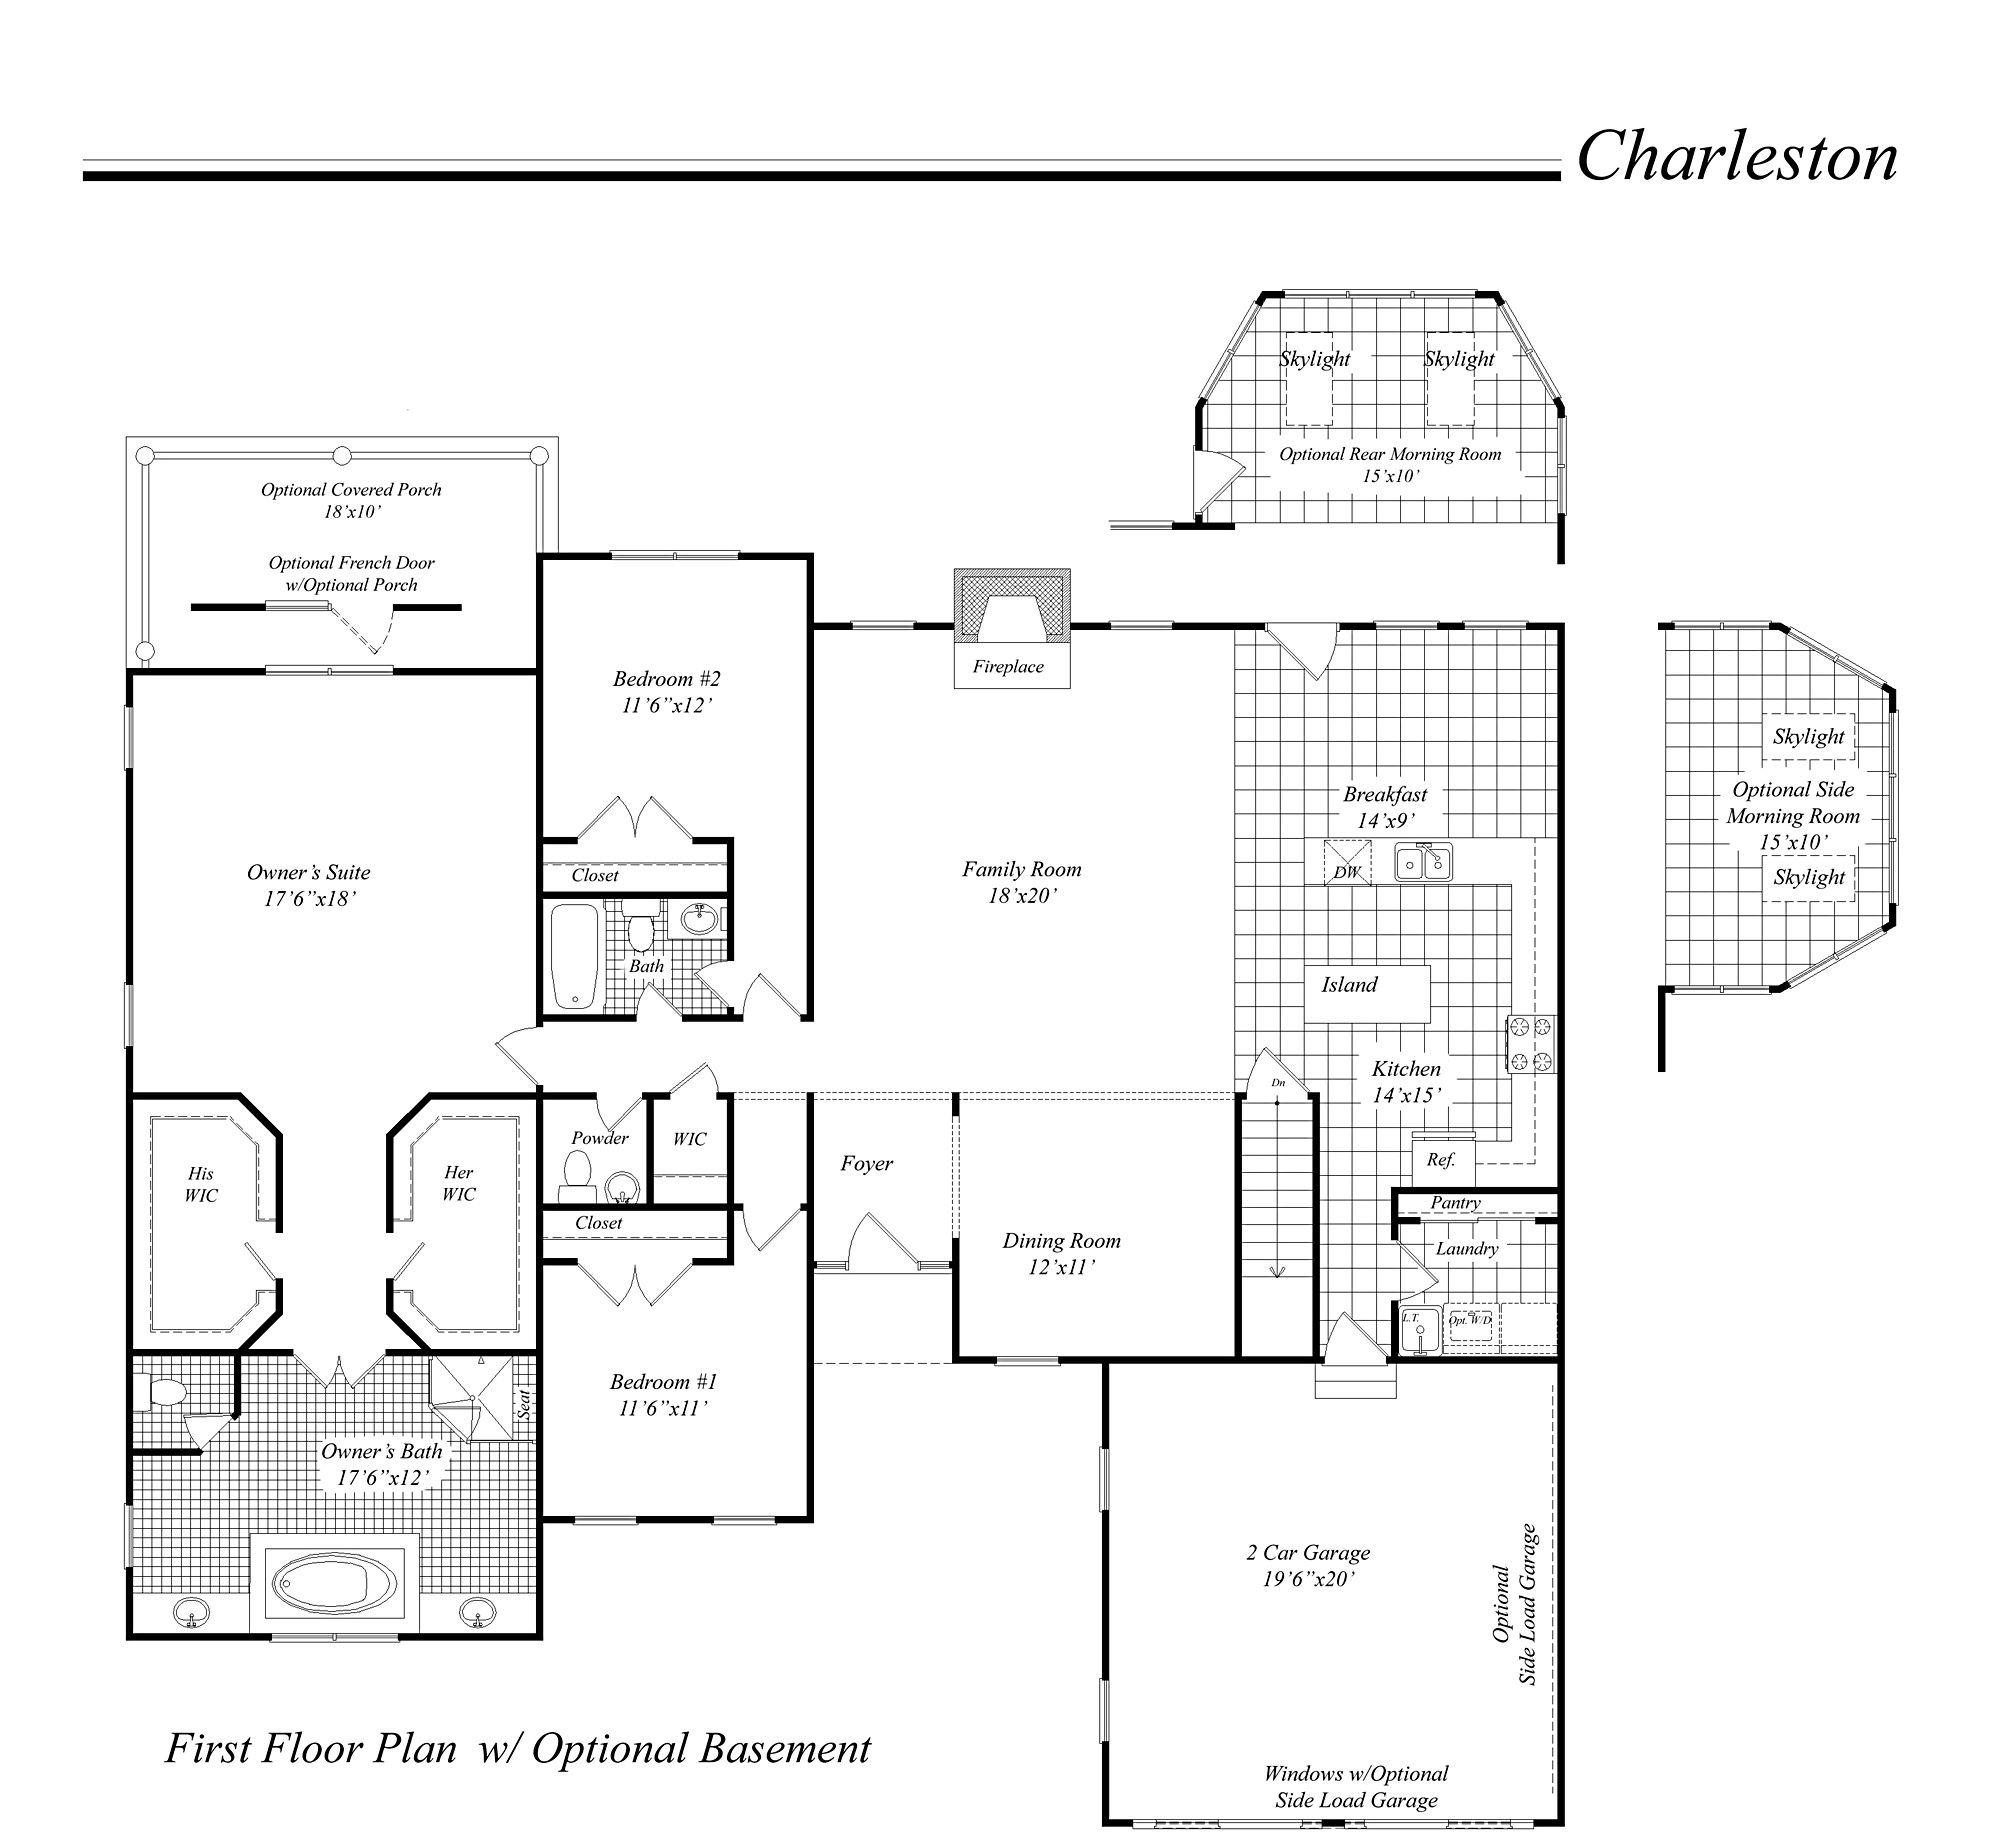 House Illustration Home Rendering Classic Homes Floor Plan Series Floor Plans House Floor Plans Classic House